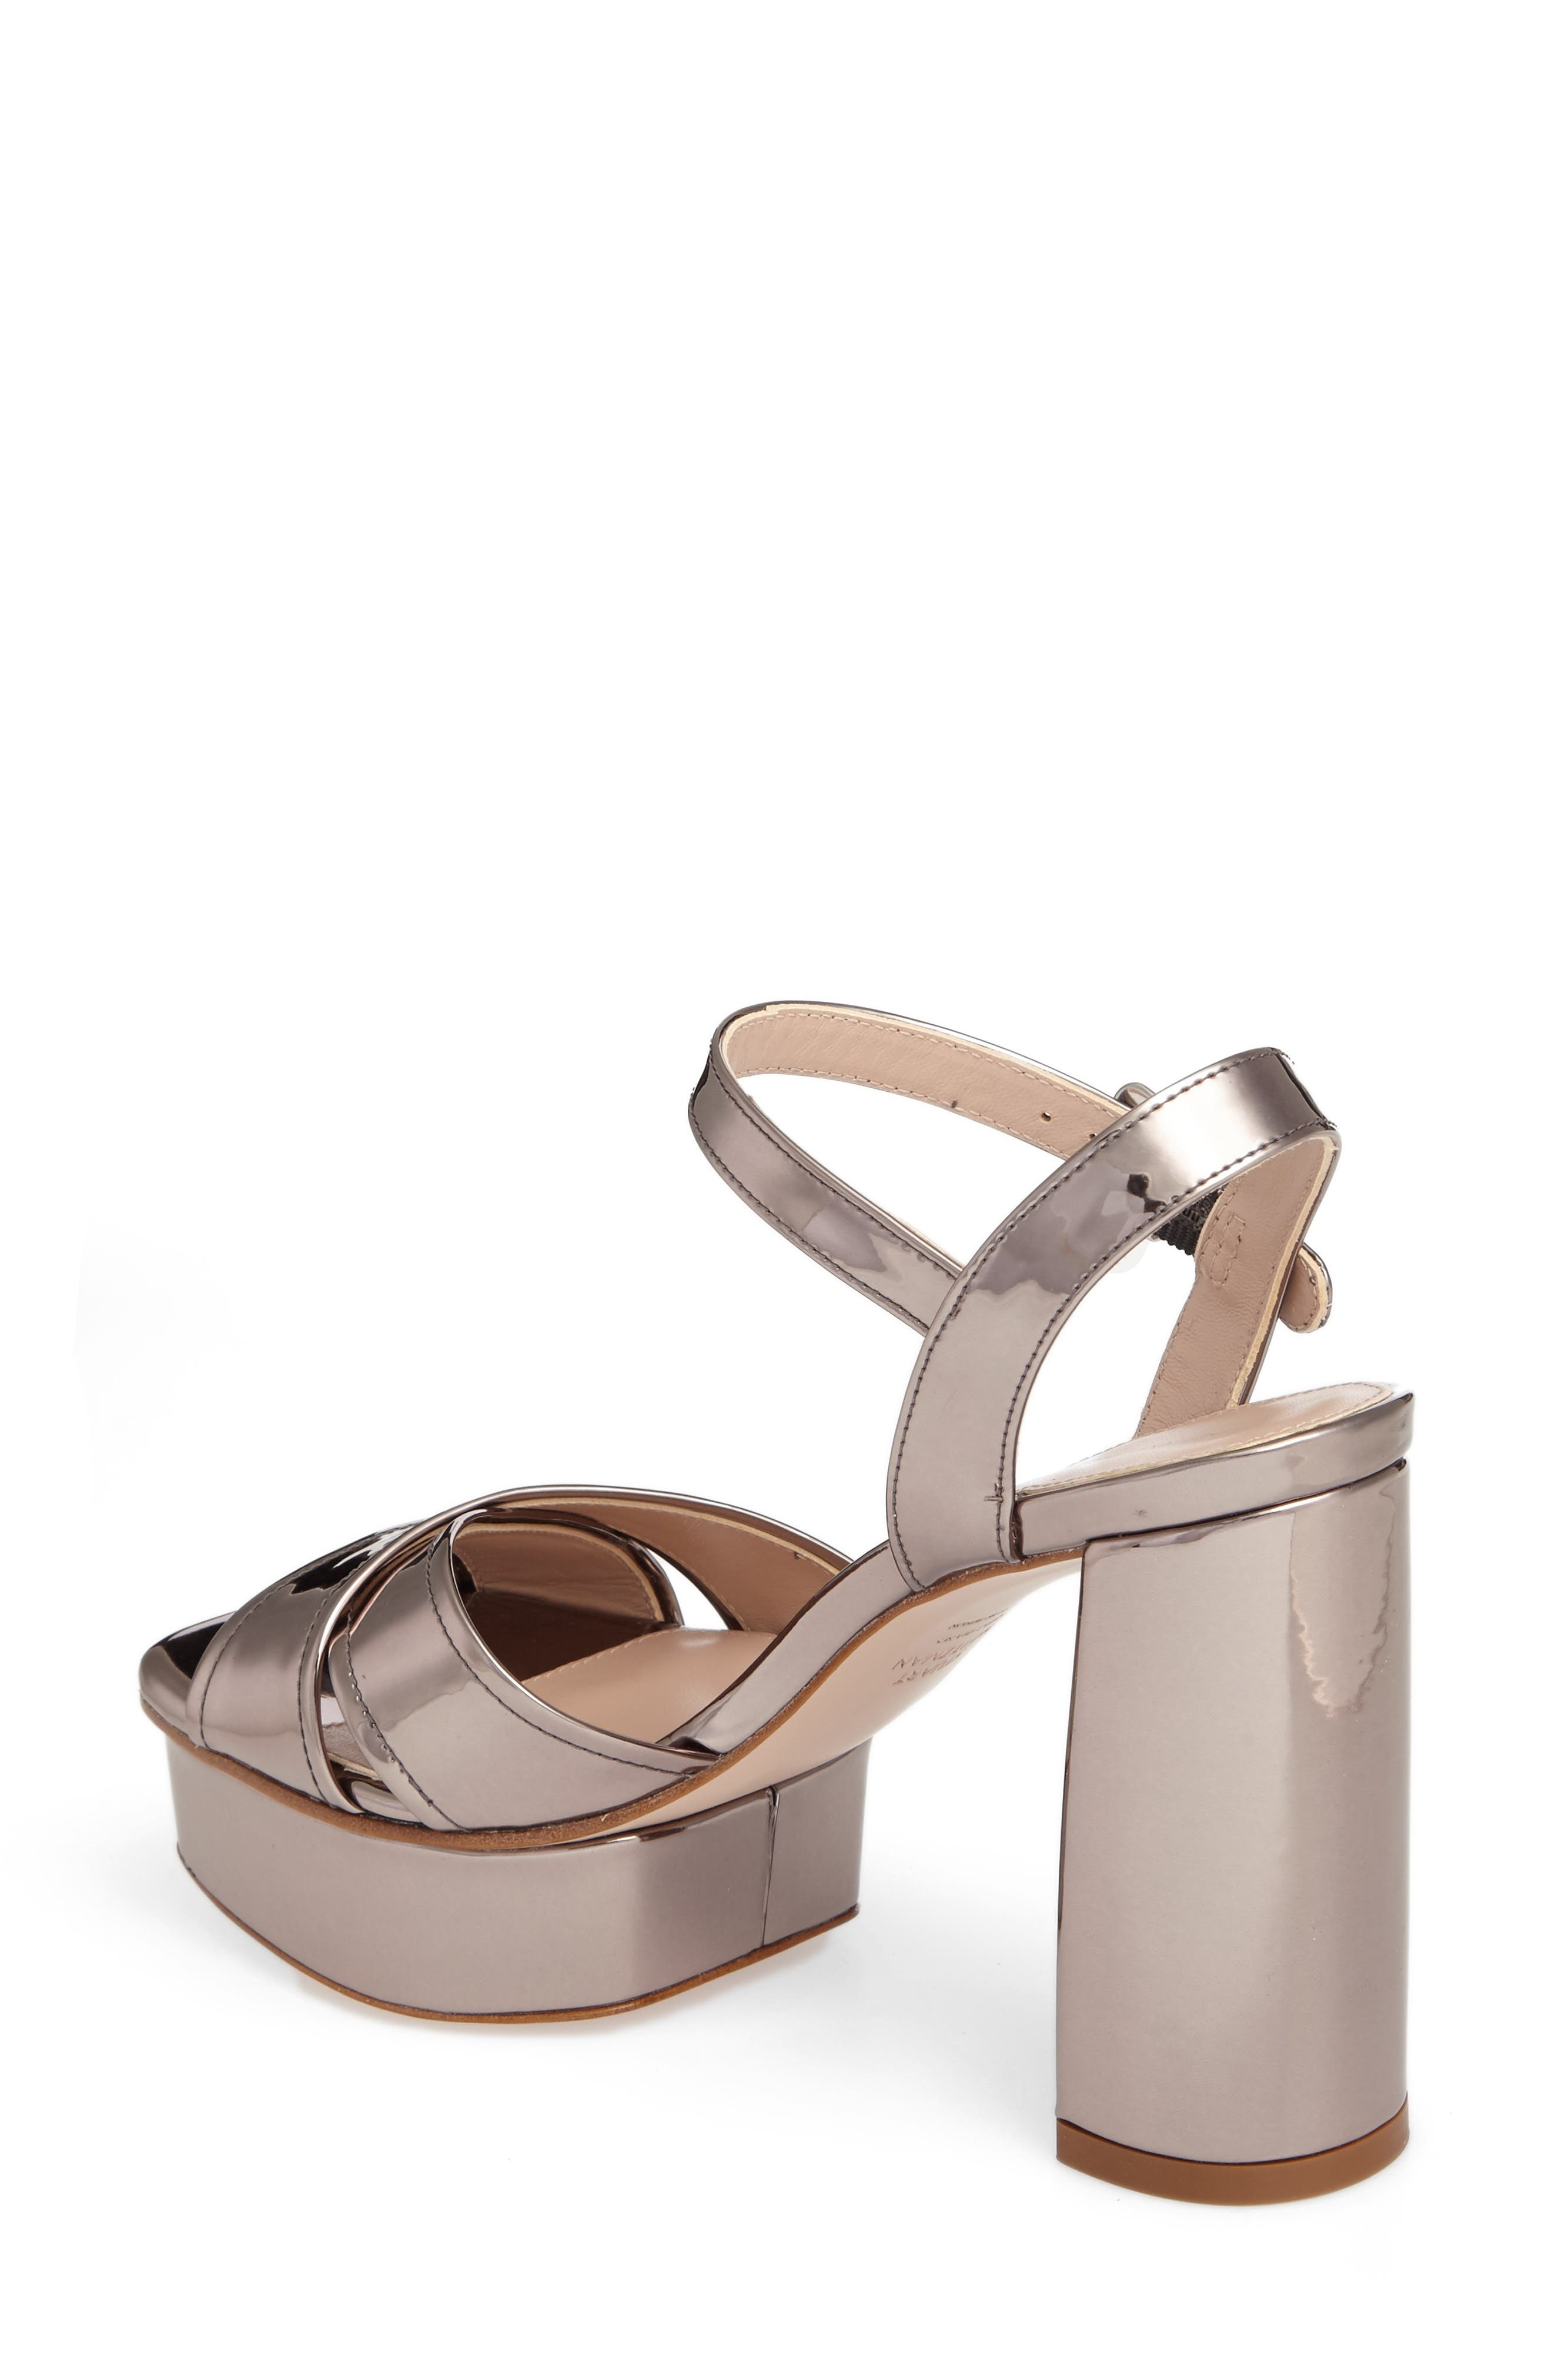 Exposed Platform Sandal,                             Alternate thumbnail 10, color,